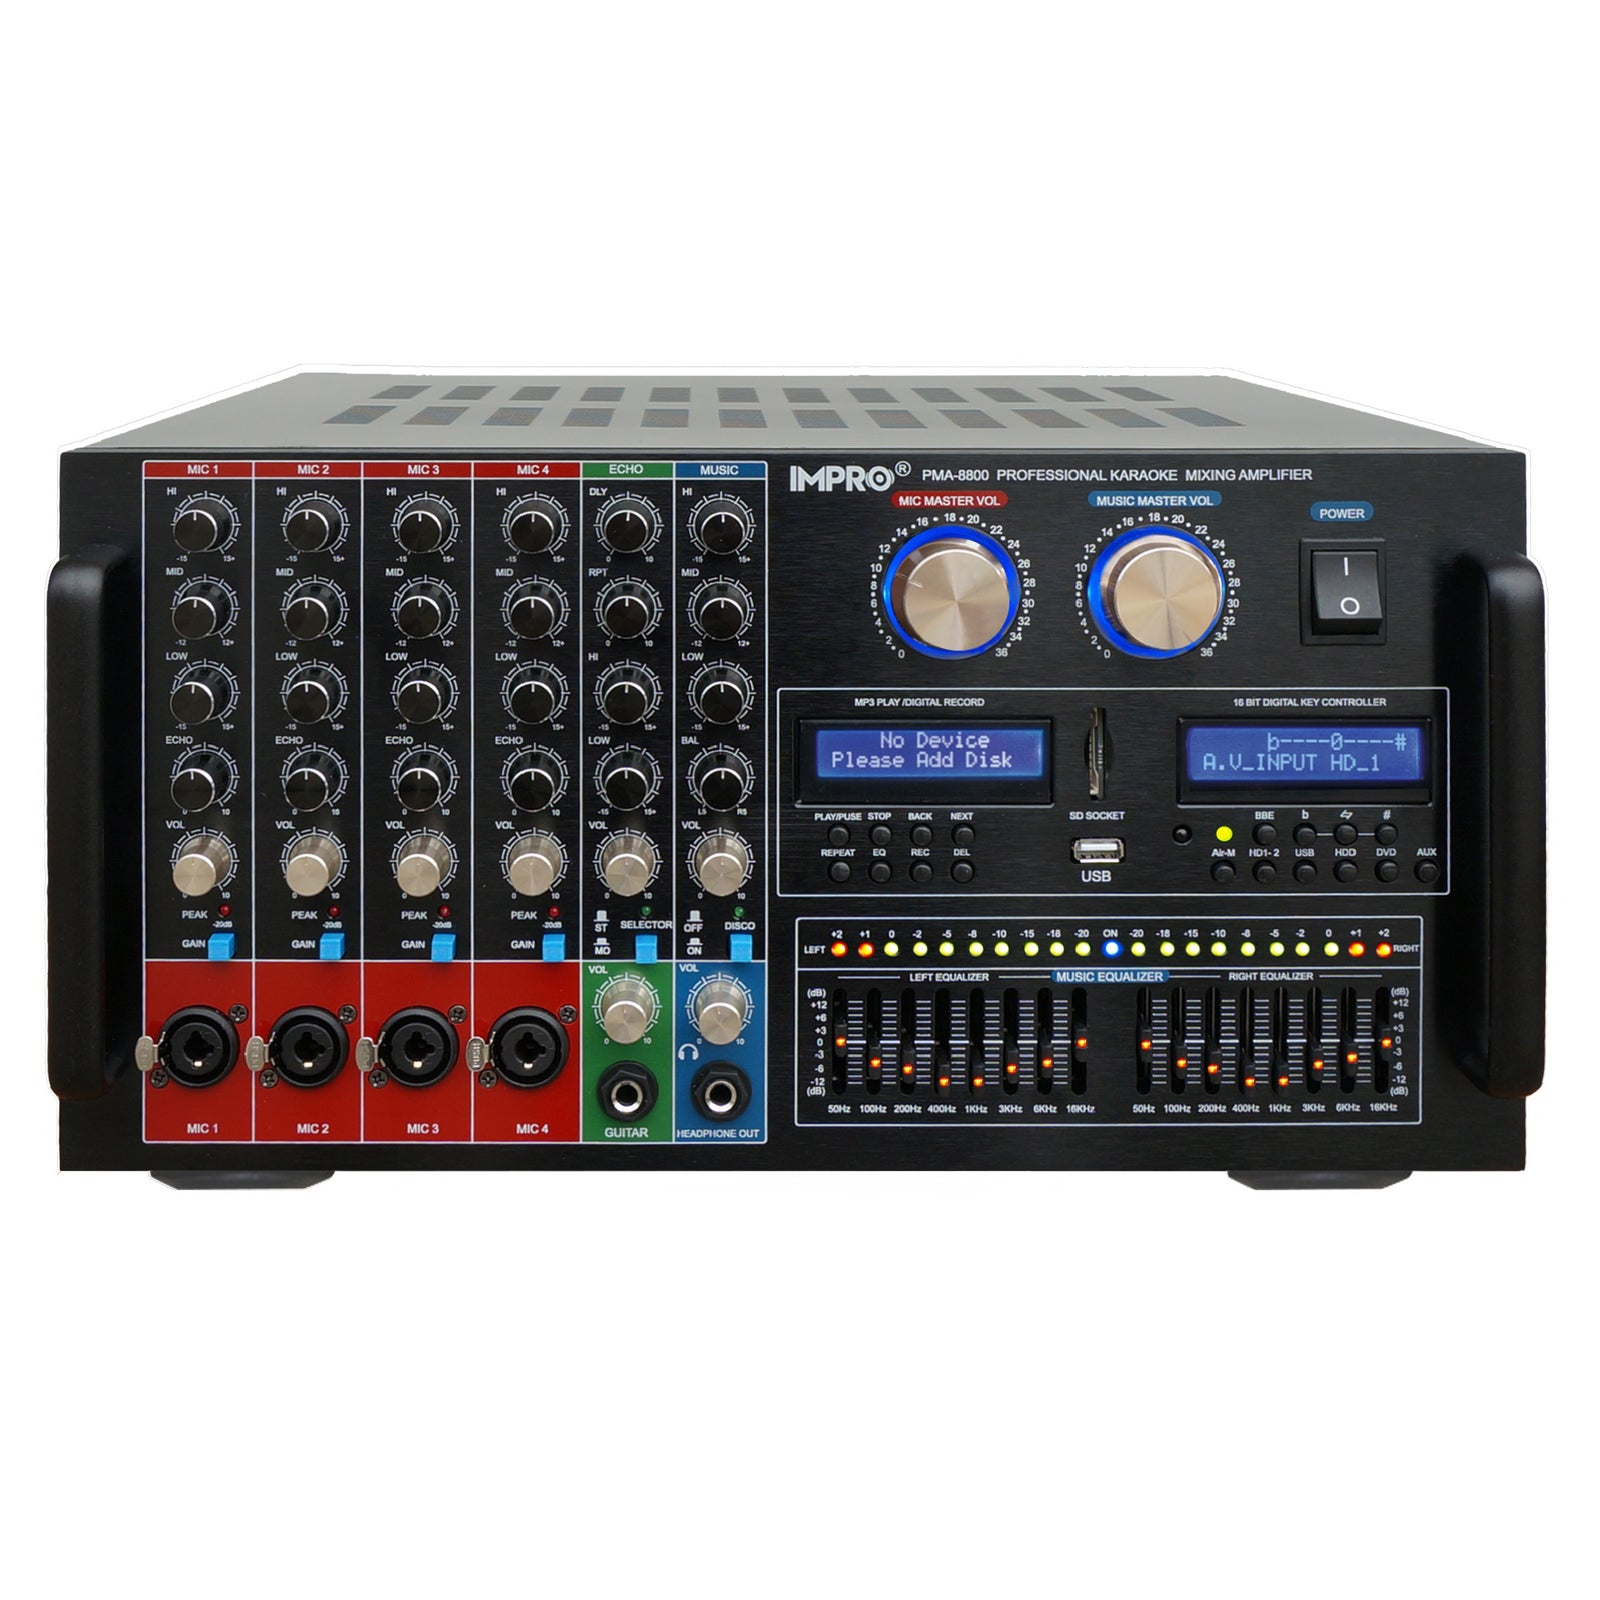 ImPro PMA-8800 1400W Mixing Amplifier